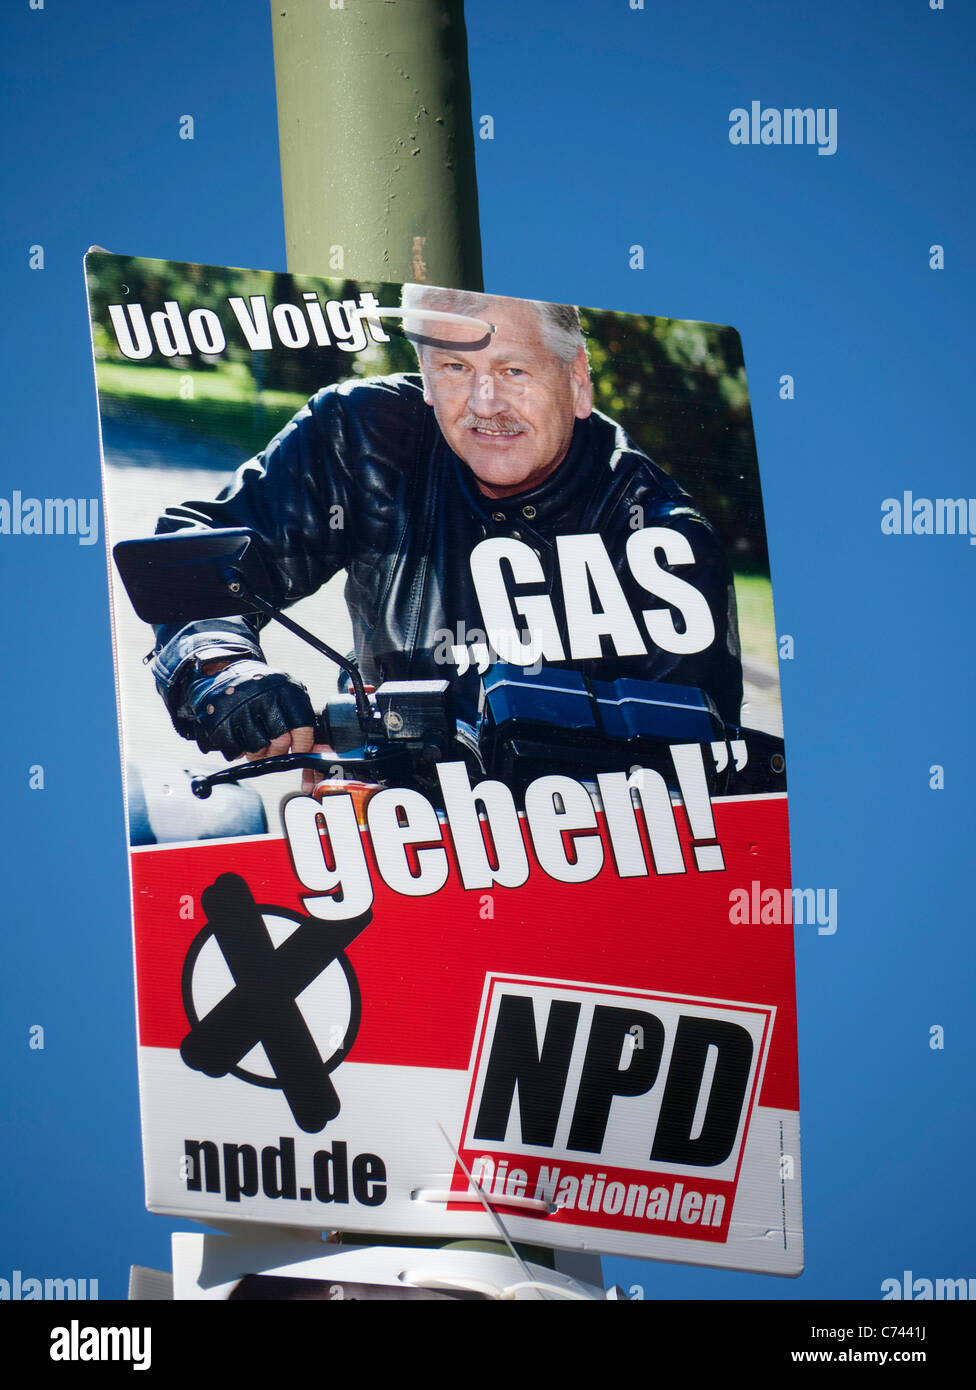 Controversial party political election poster by NPD or National Democratic Party of Germany in Berlin before election - Stock Image